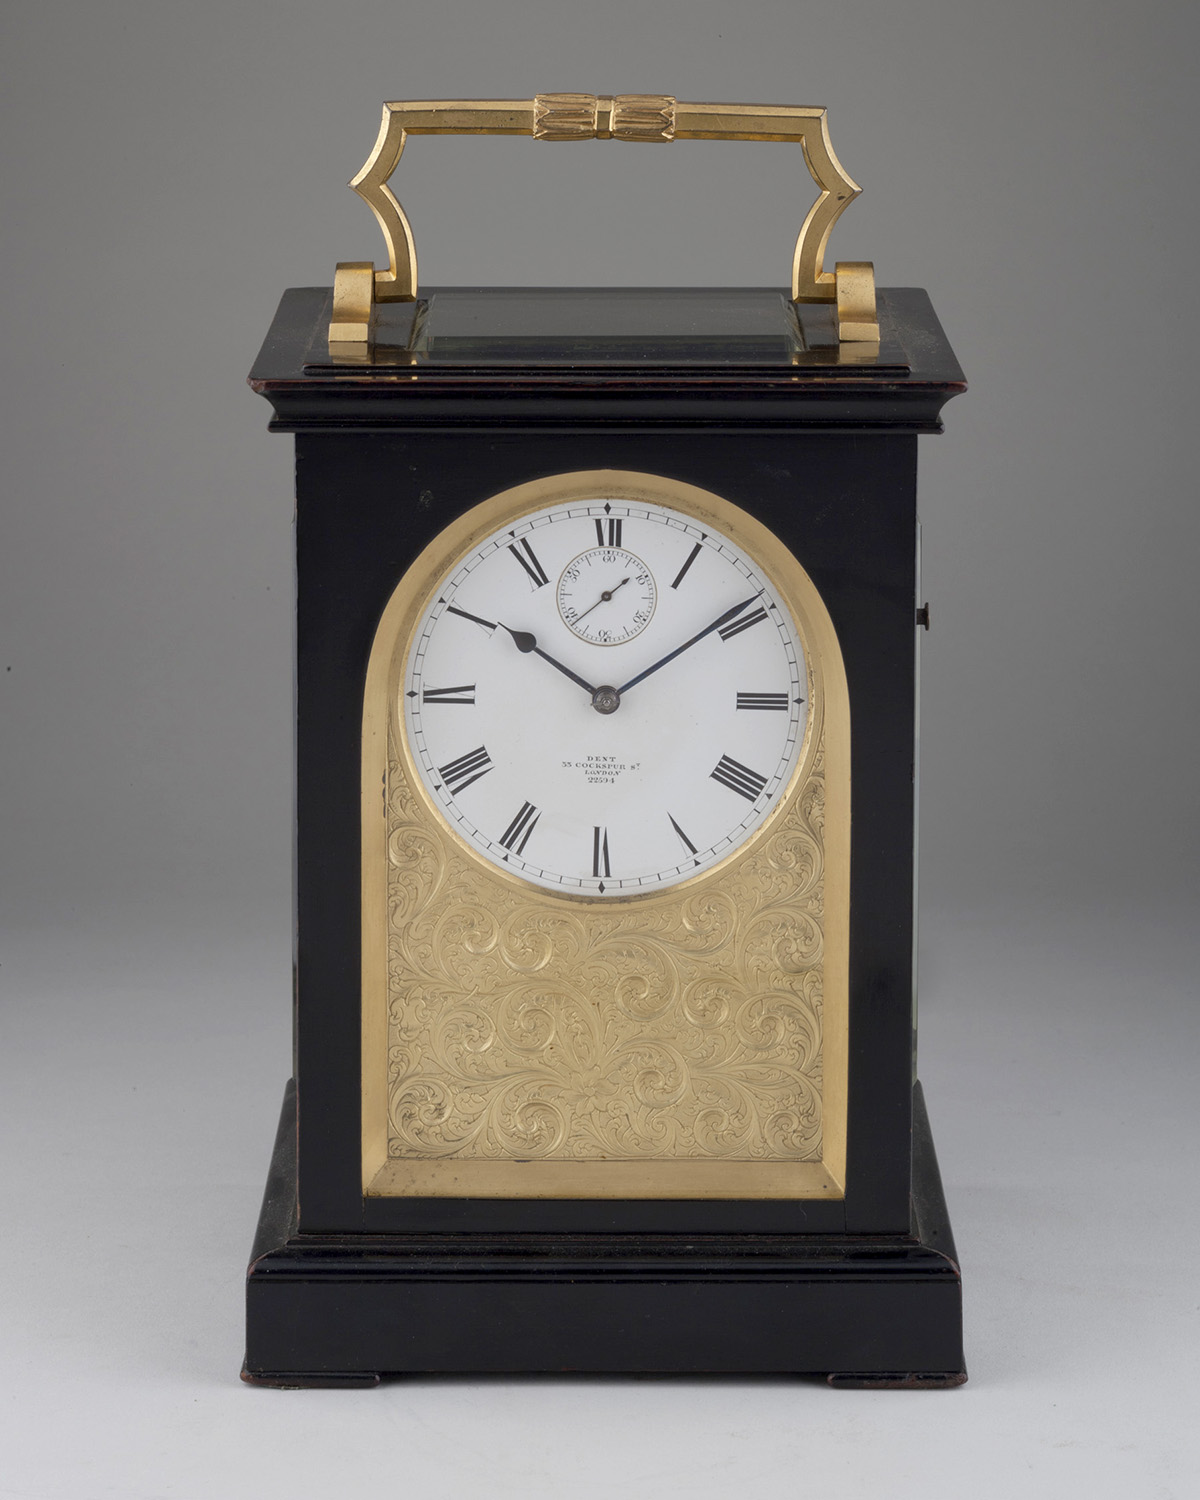 Carter Marsh Amp Co Ltd Antique Clocks Dent London